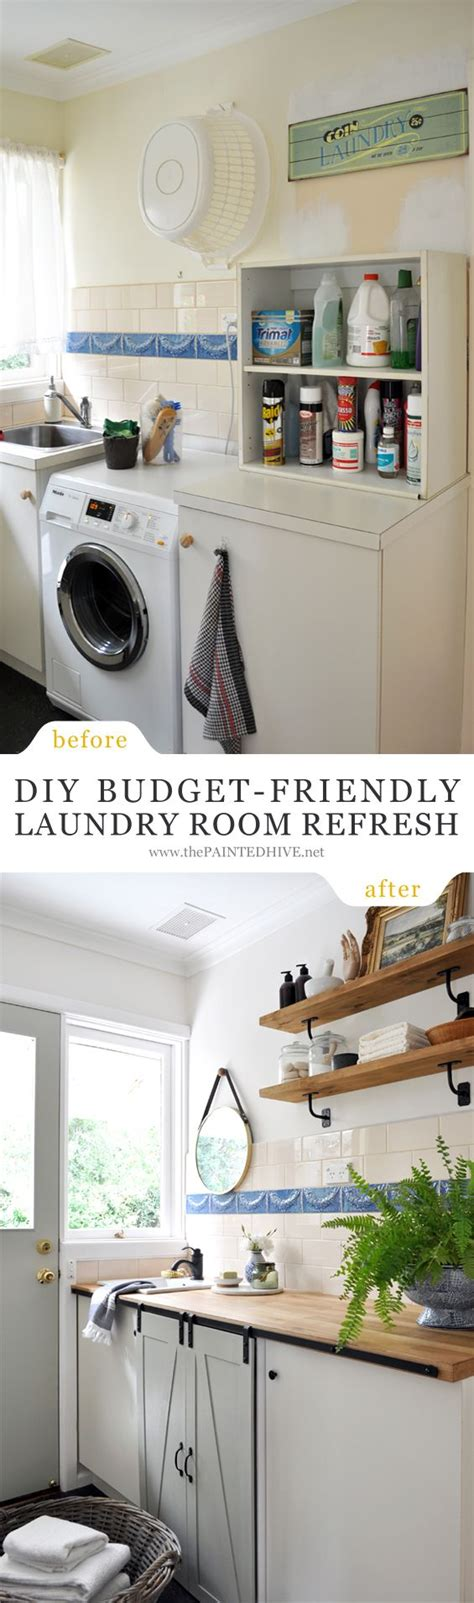 Decorating A Laundry Room On A Budget Home Decorating Diy Projects Diy Budget Friendly Laundry Room Refresh Decor Object Your